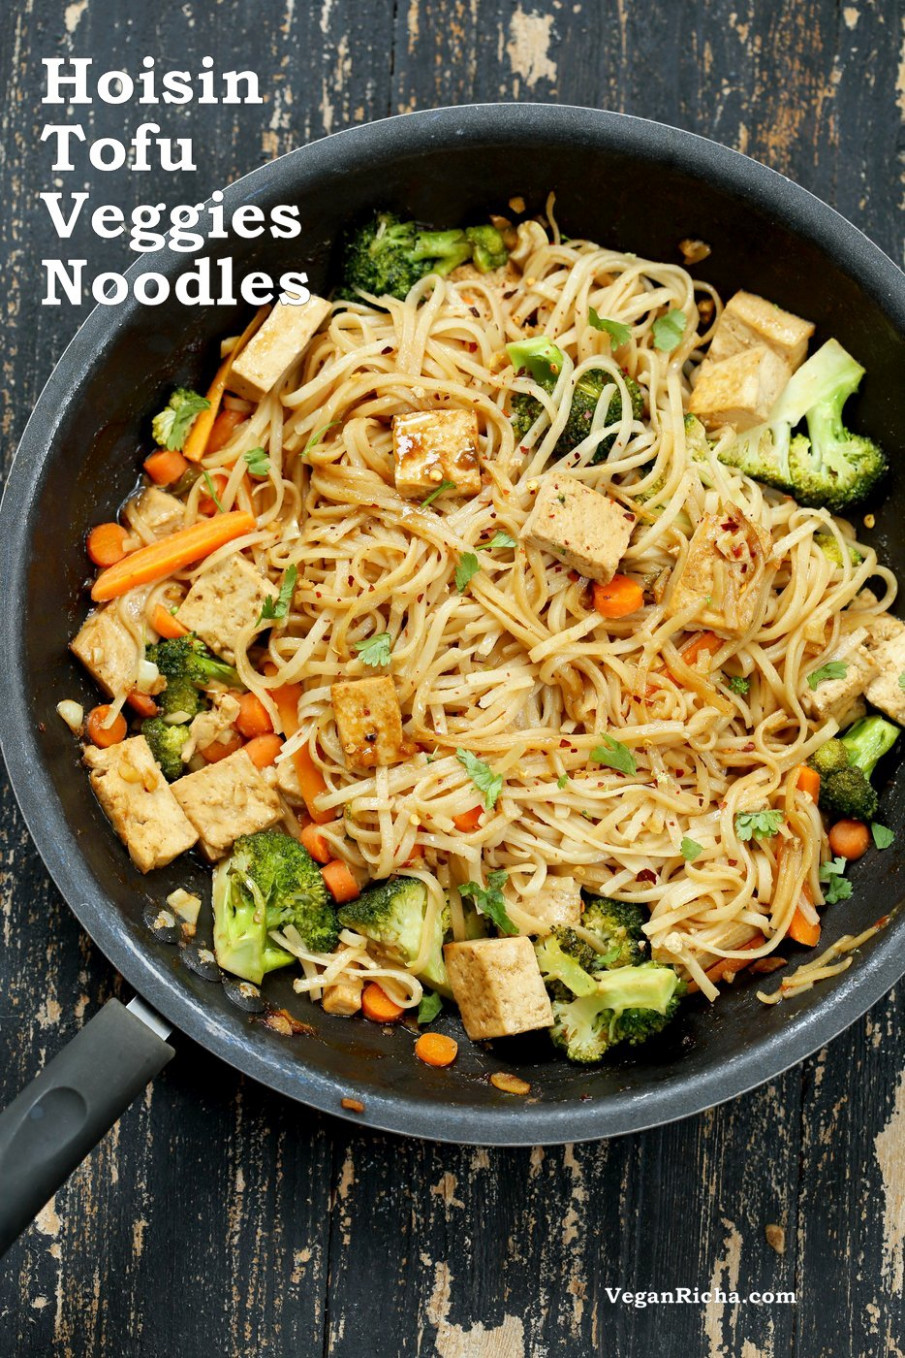 Tofu and Brown Rice Noodles in Hoisin Sauce - Vegan Richa - vegetarian recipes with rice and vegetables